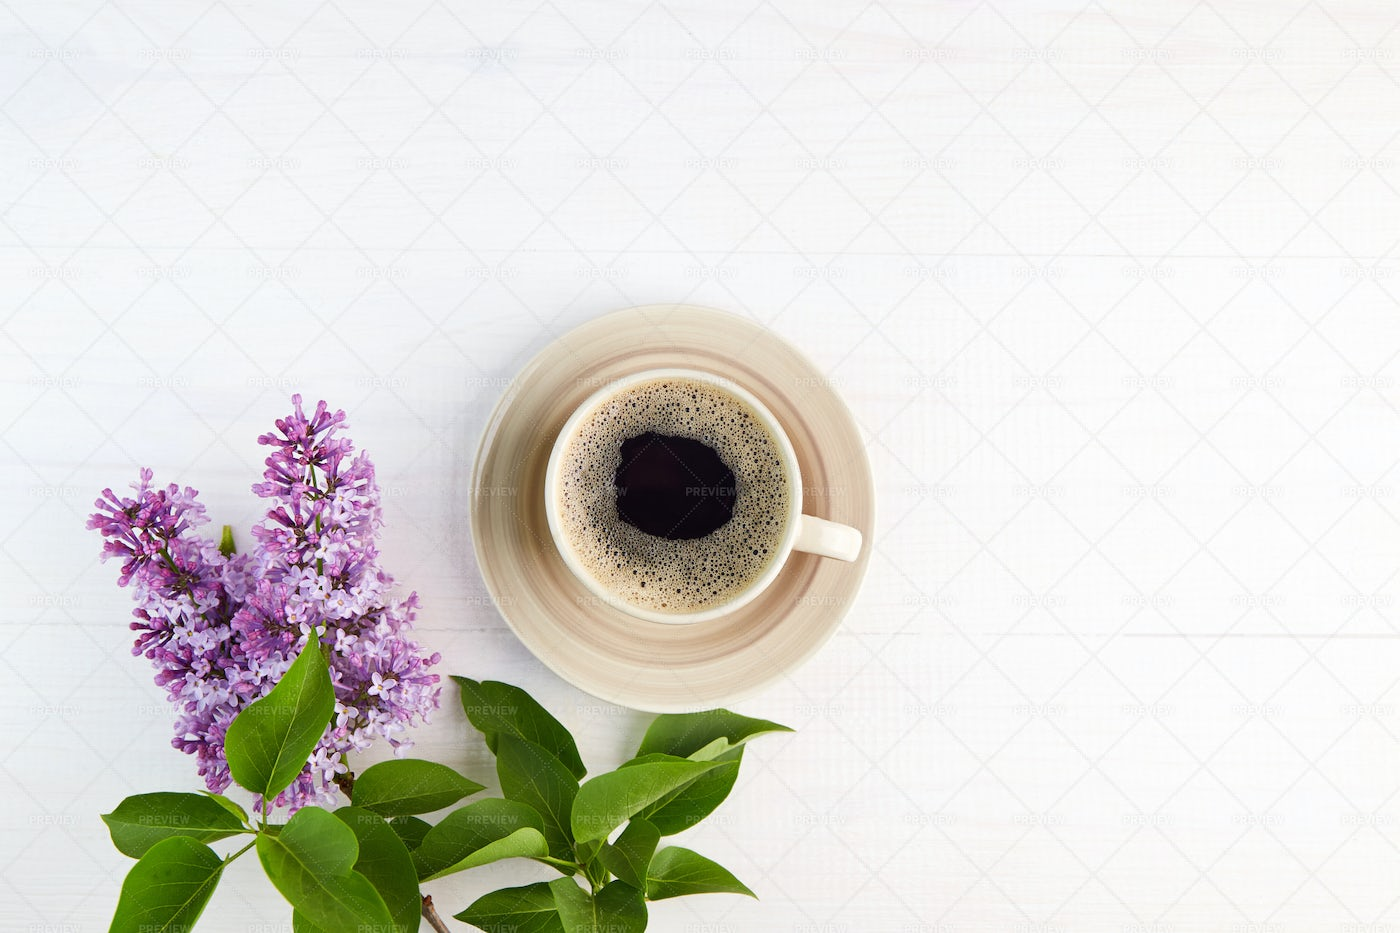 Lilac Branches And Cup Of Coffee: Stock Photos